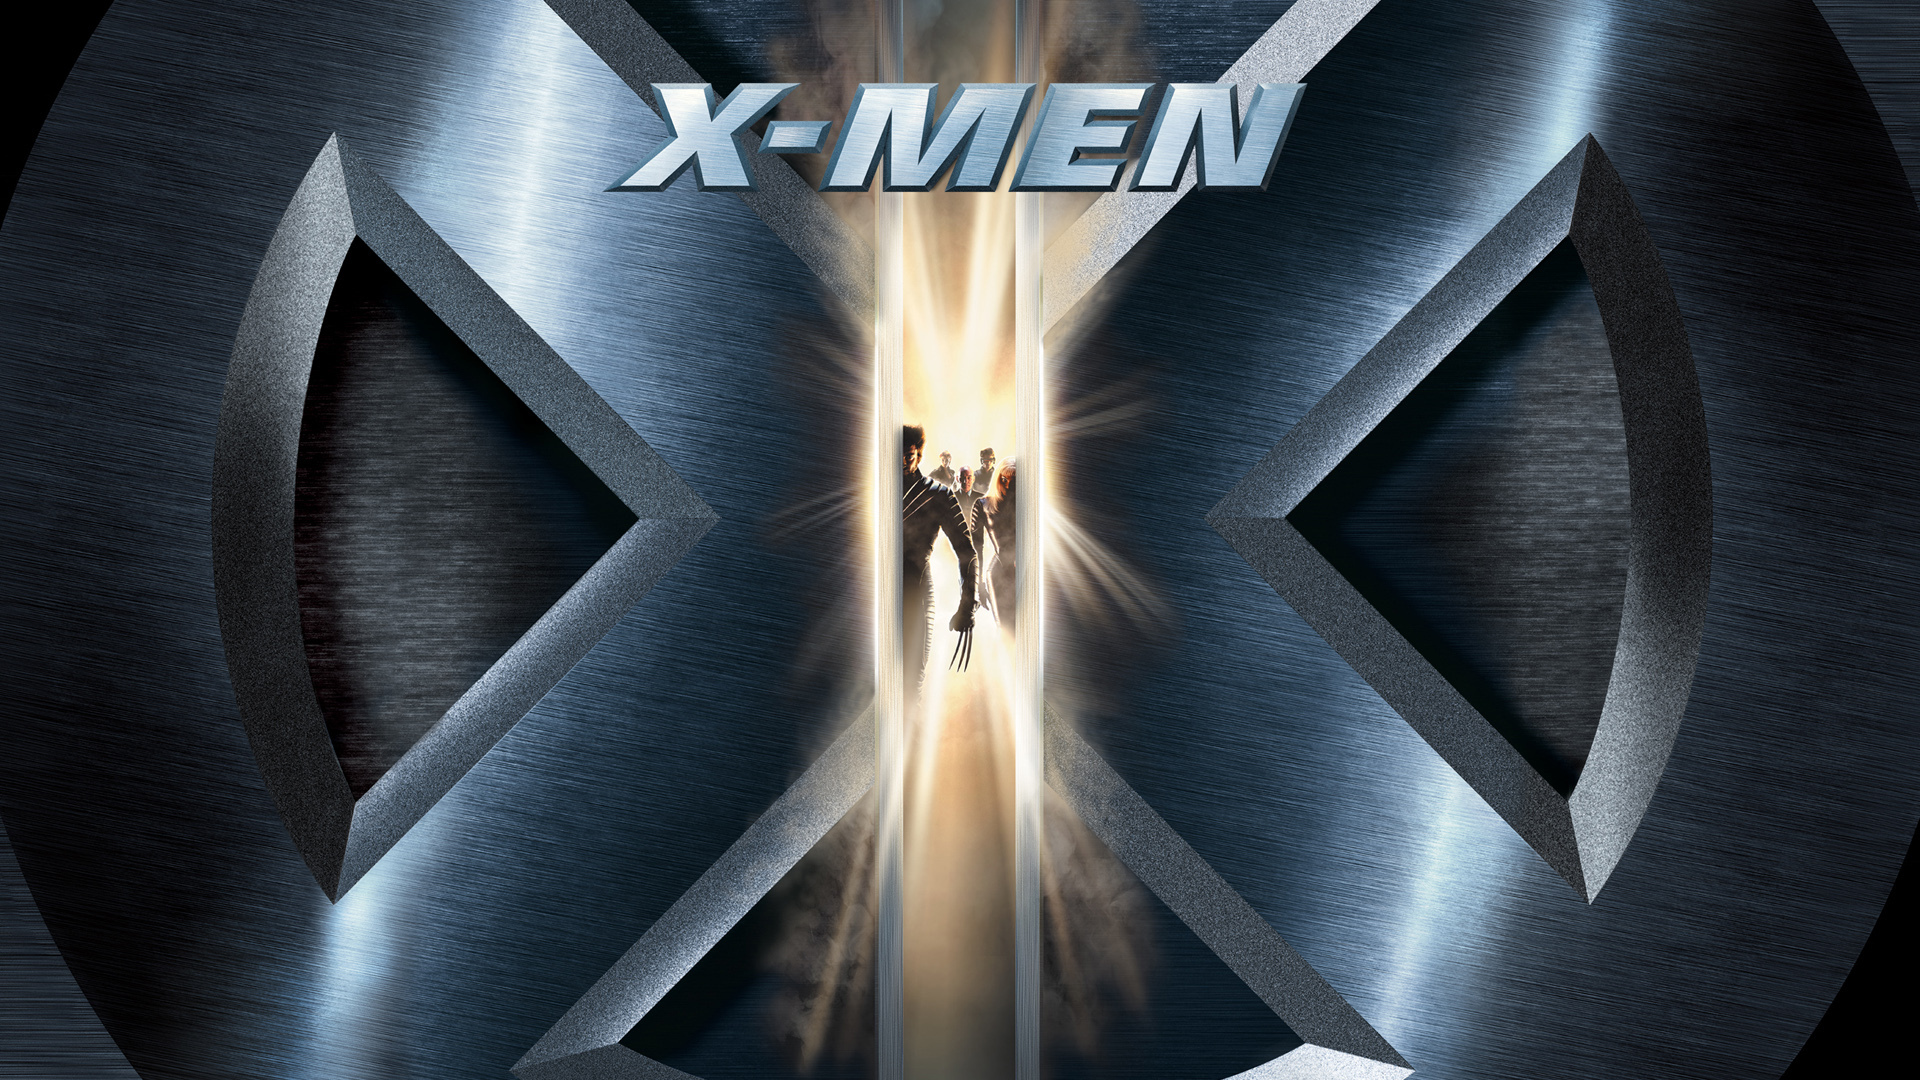 download next wallpaper prev wallpaperX Men Logo Wallpaper